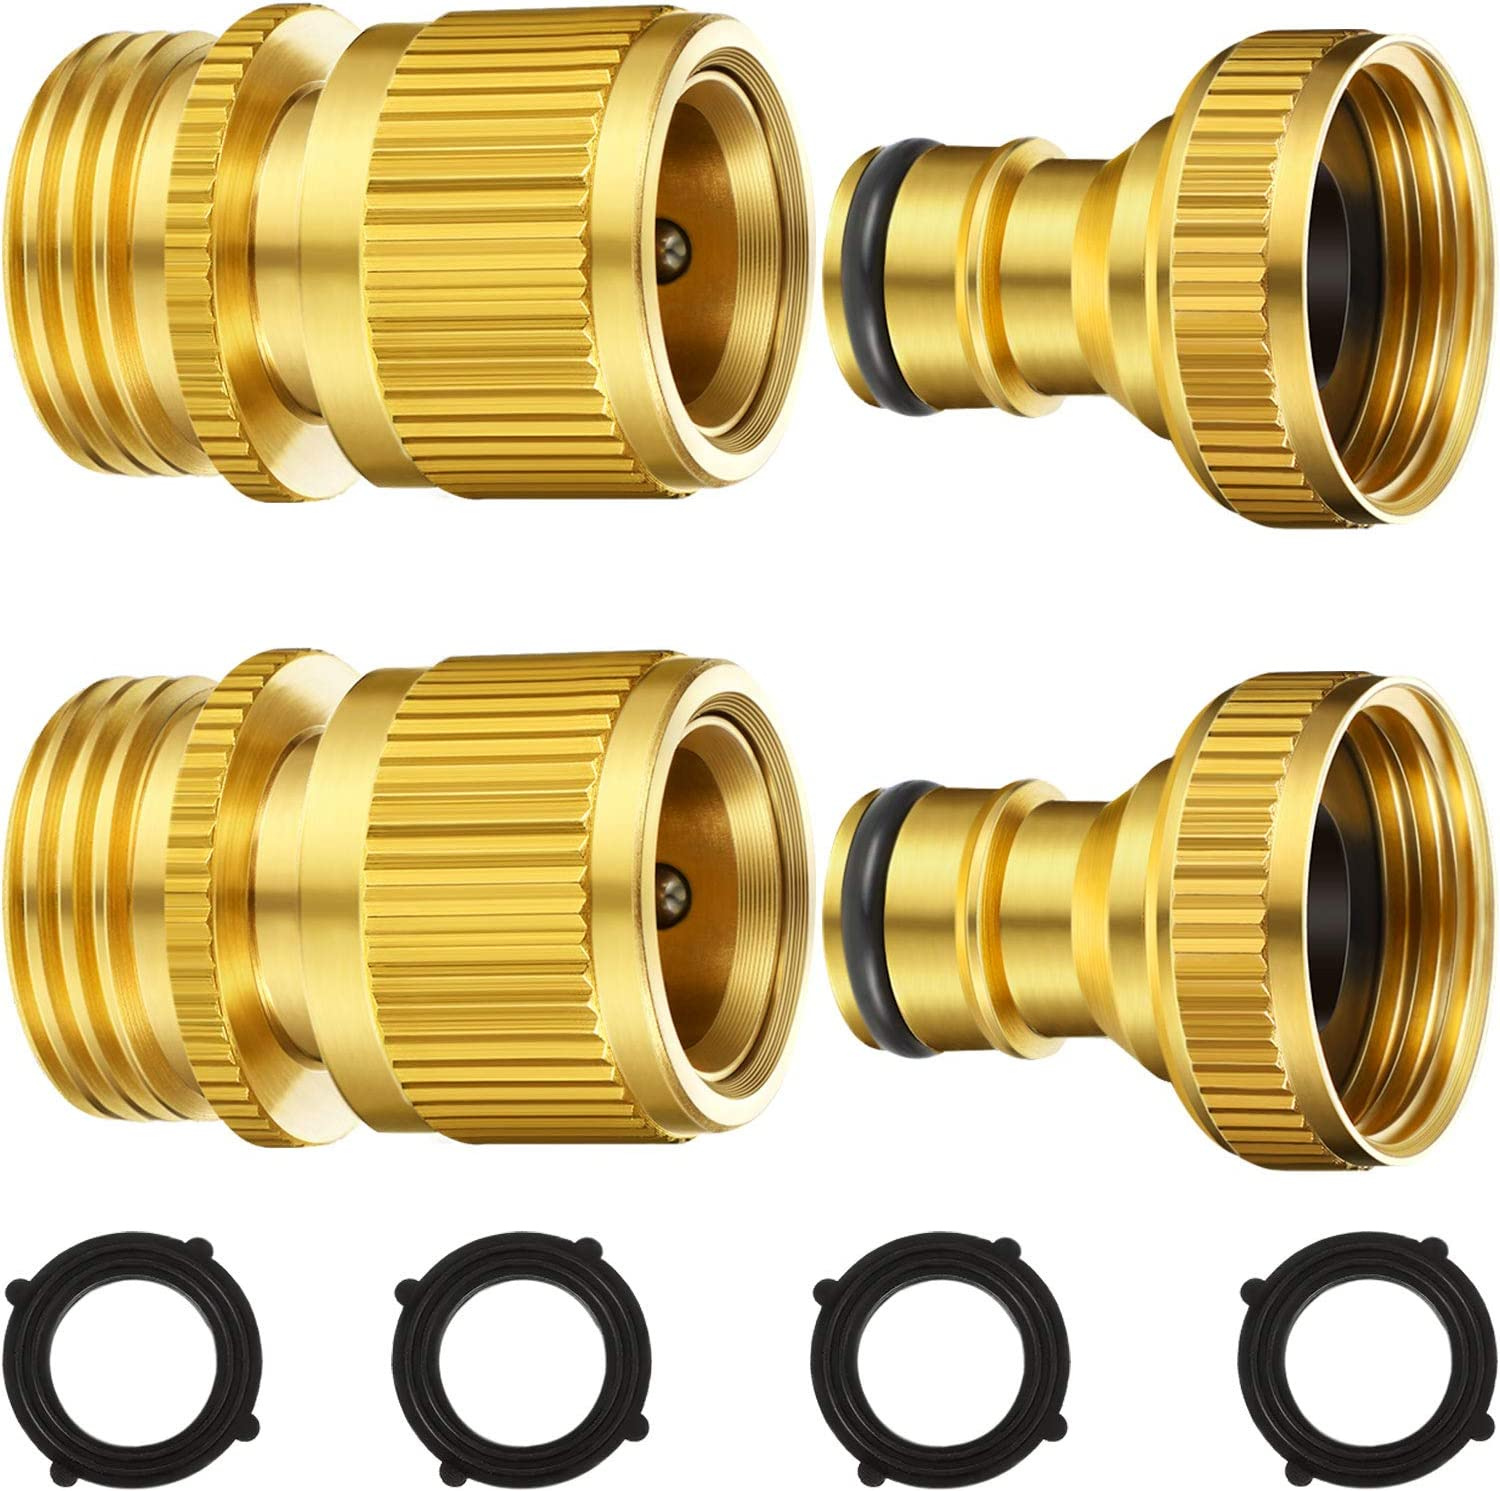 Garden Hose Quick Connect Fittings Solid Brass Quick Connector 3/4 Inch GHT Garden Water Hose Connectors with Extra Rubber Washers, Male (IT) and Female (OT) (2 Sets)